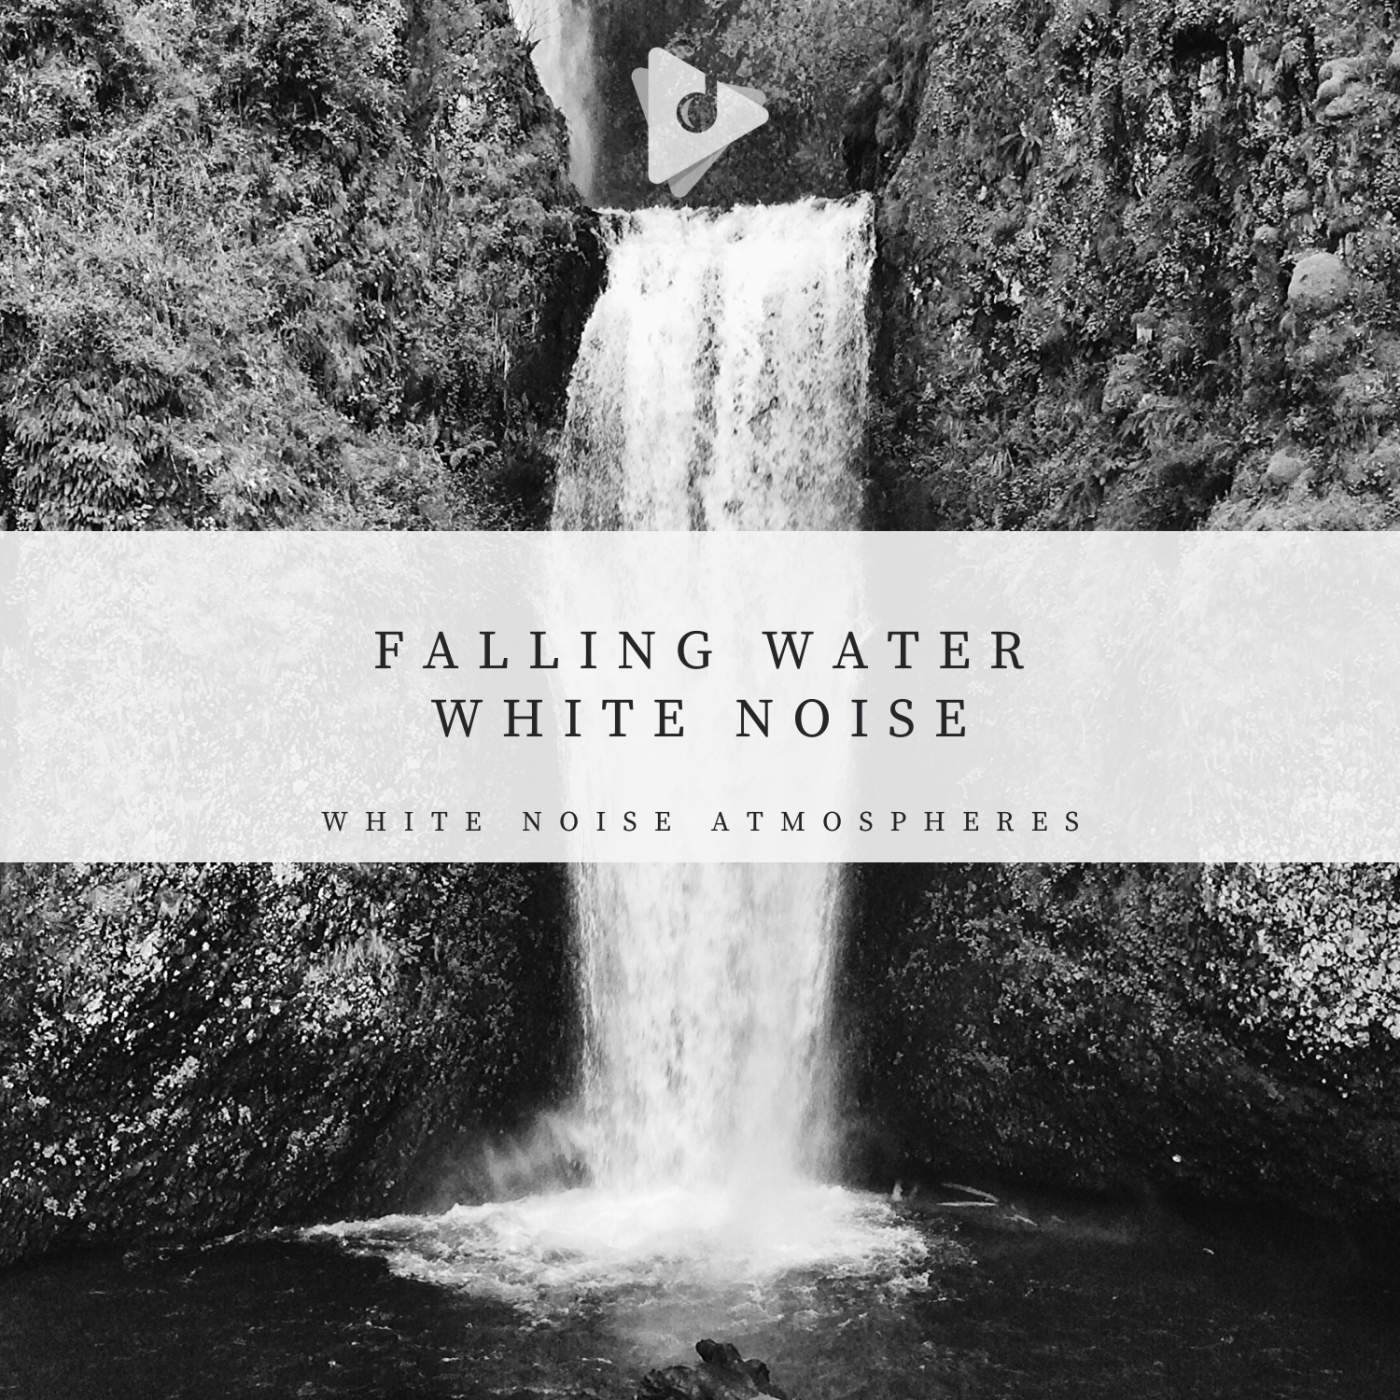 Falling Water White Noise